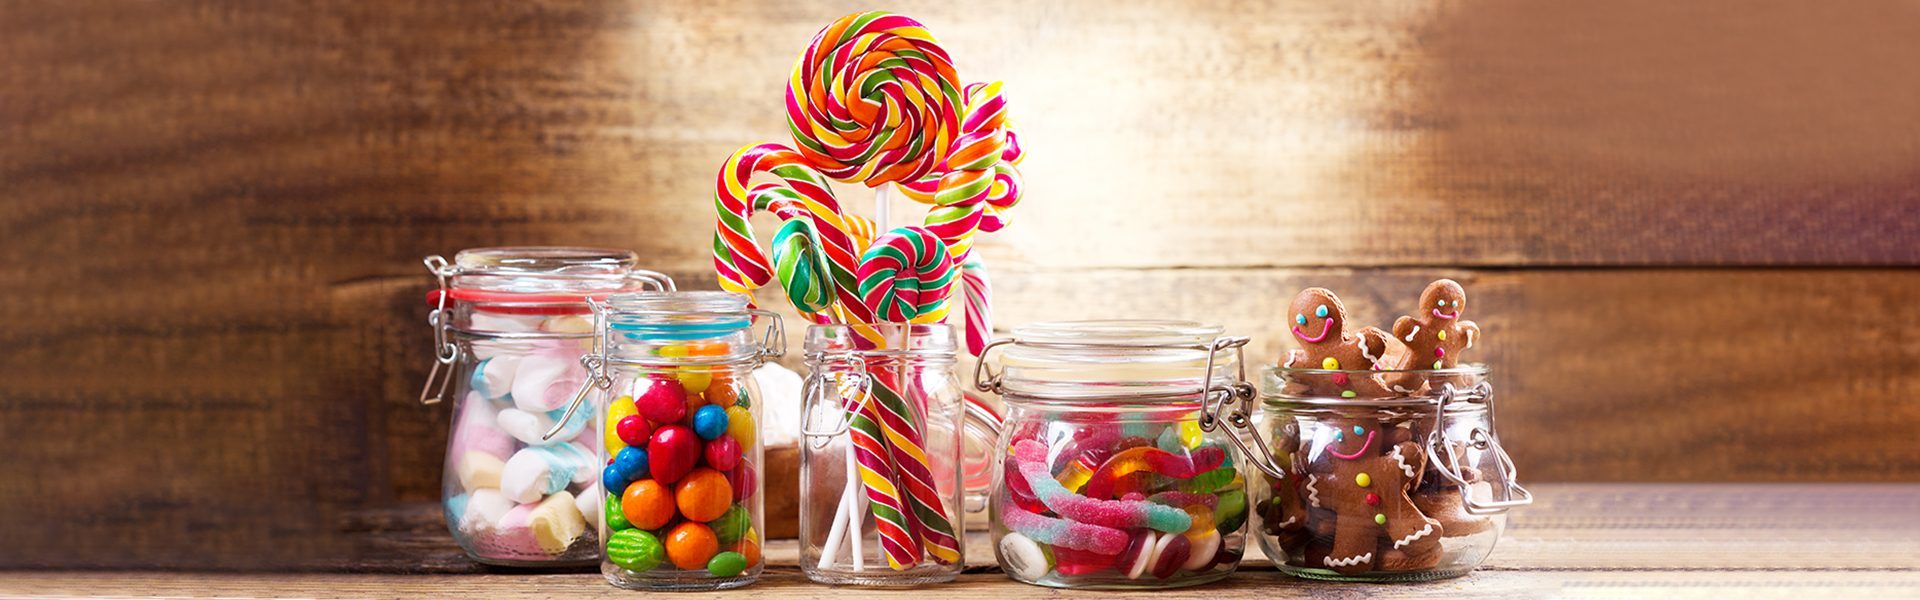 For The Love Of Candy; What's In Store This Holiday Season?